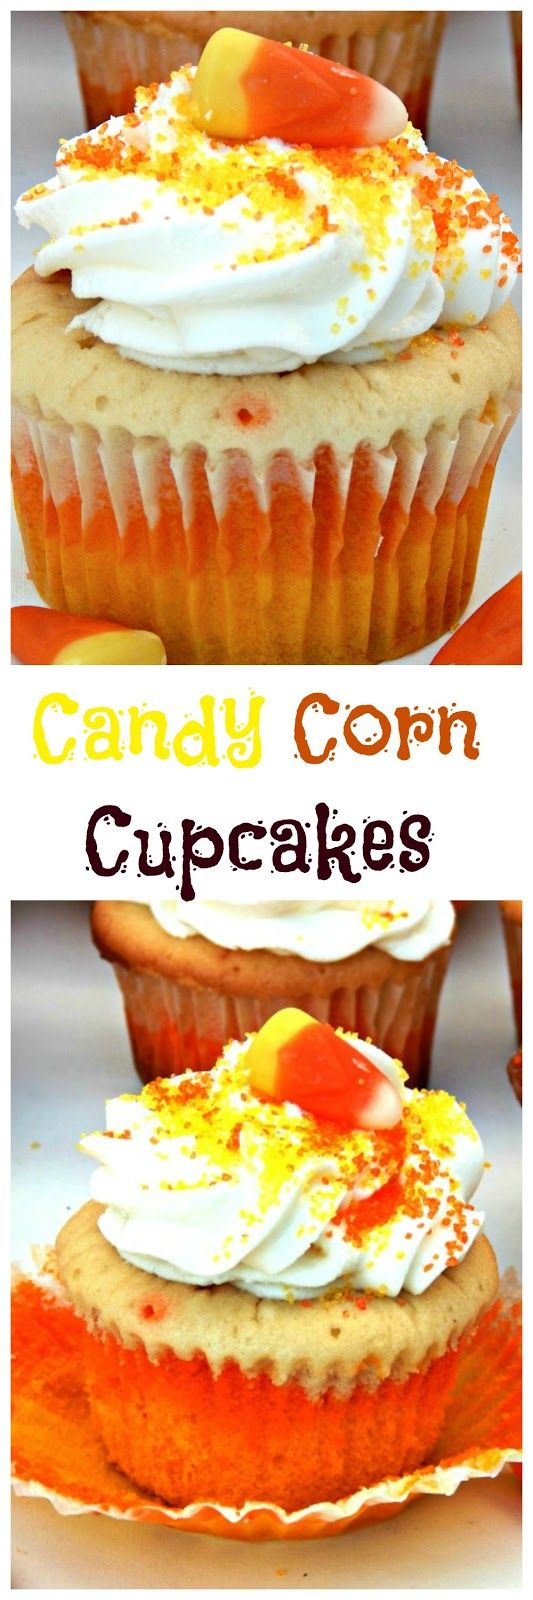 Candy Corn Cupcakes made from scratch, not a box! Delicious and moist.  www.thisolemom.com